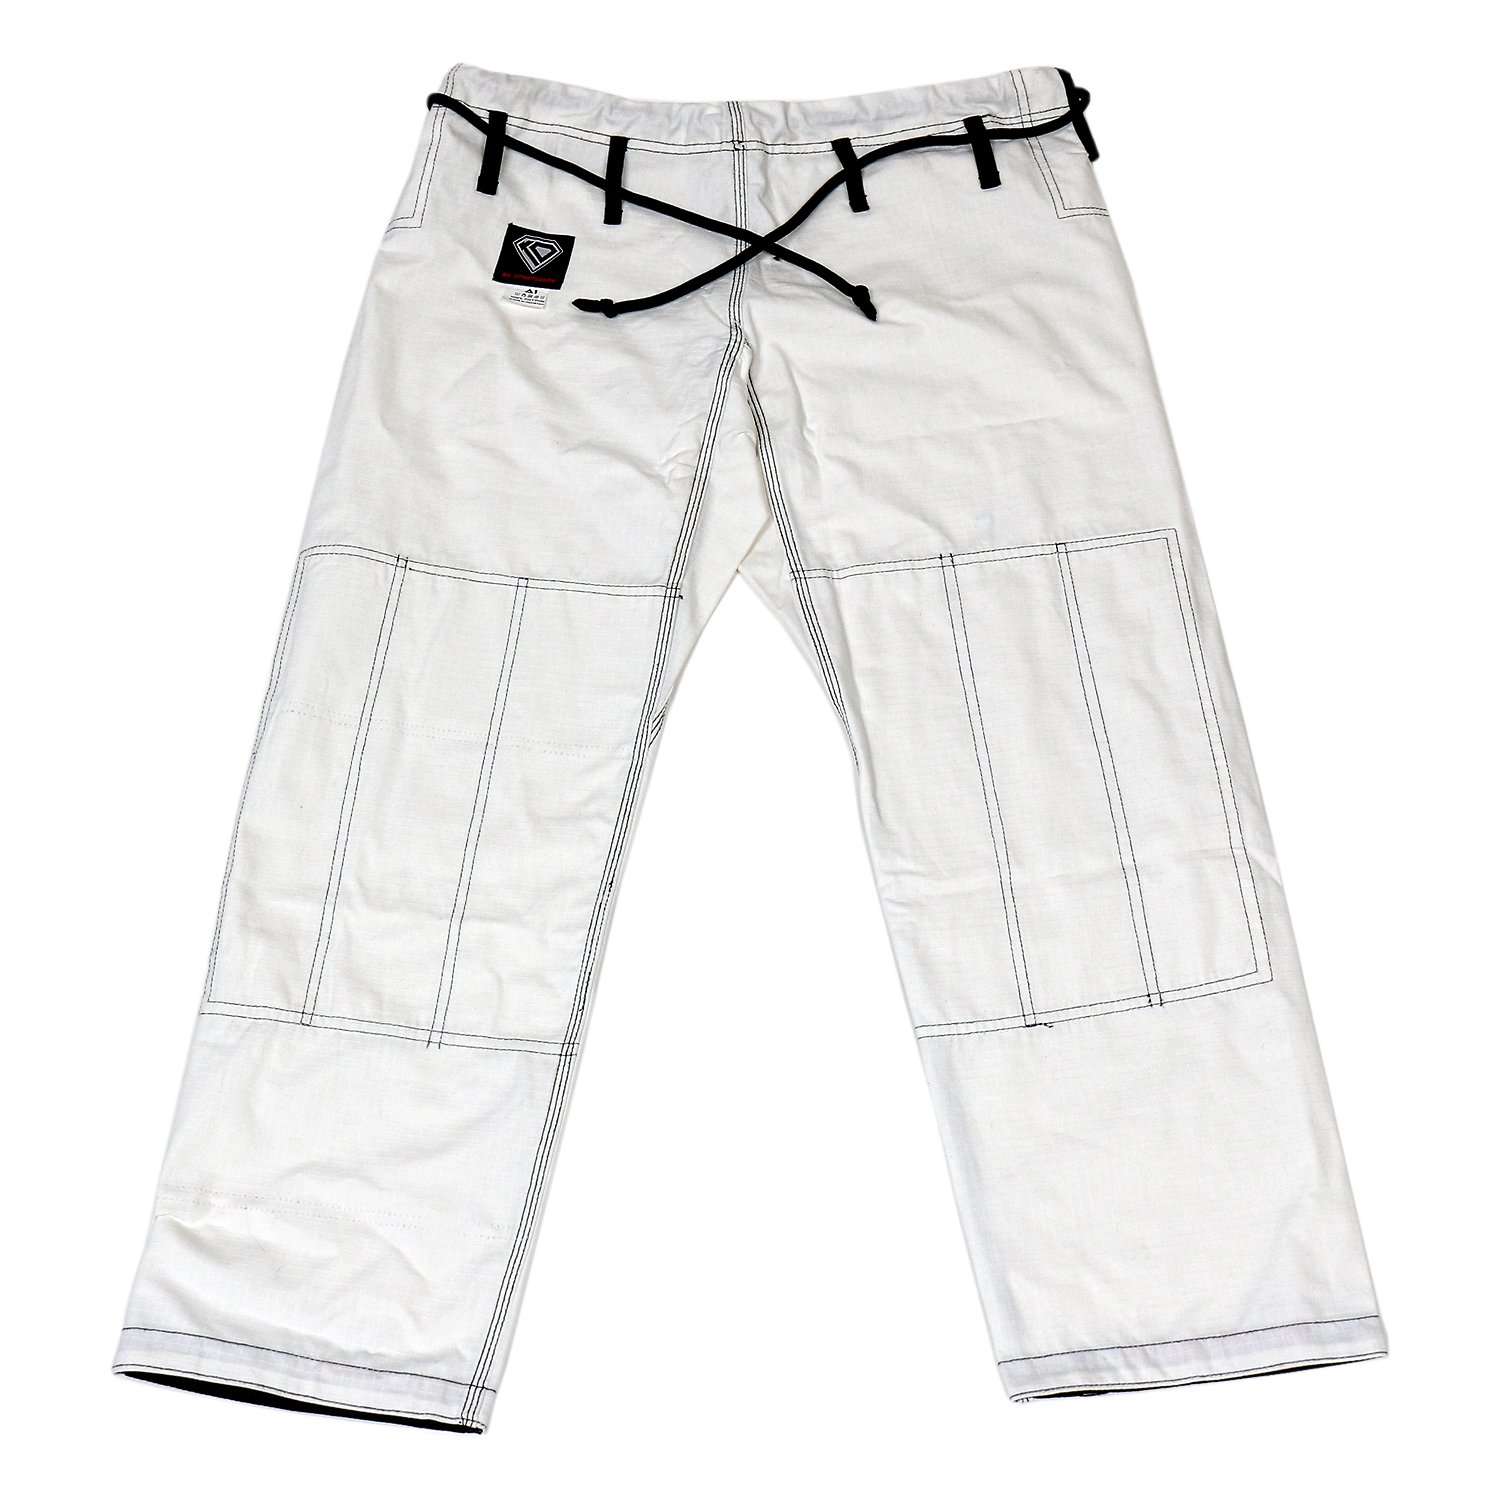 KO Sports Gear's White Gi Pants - Rip Stop - For Jiu Jitsu (A6) by KO Sports Gear